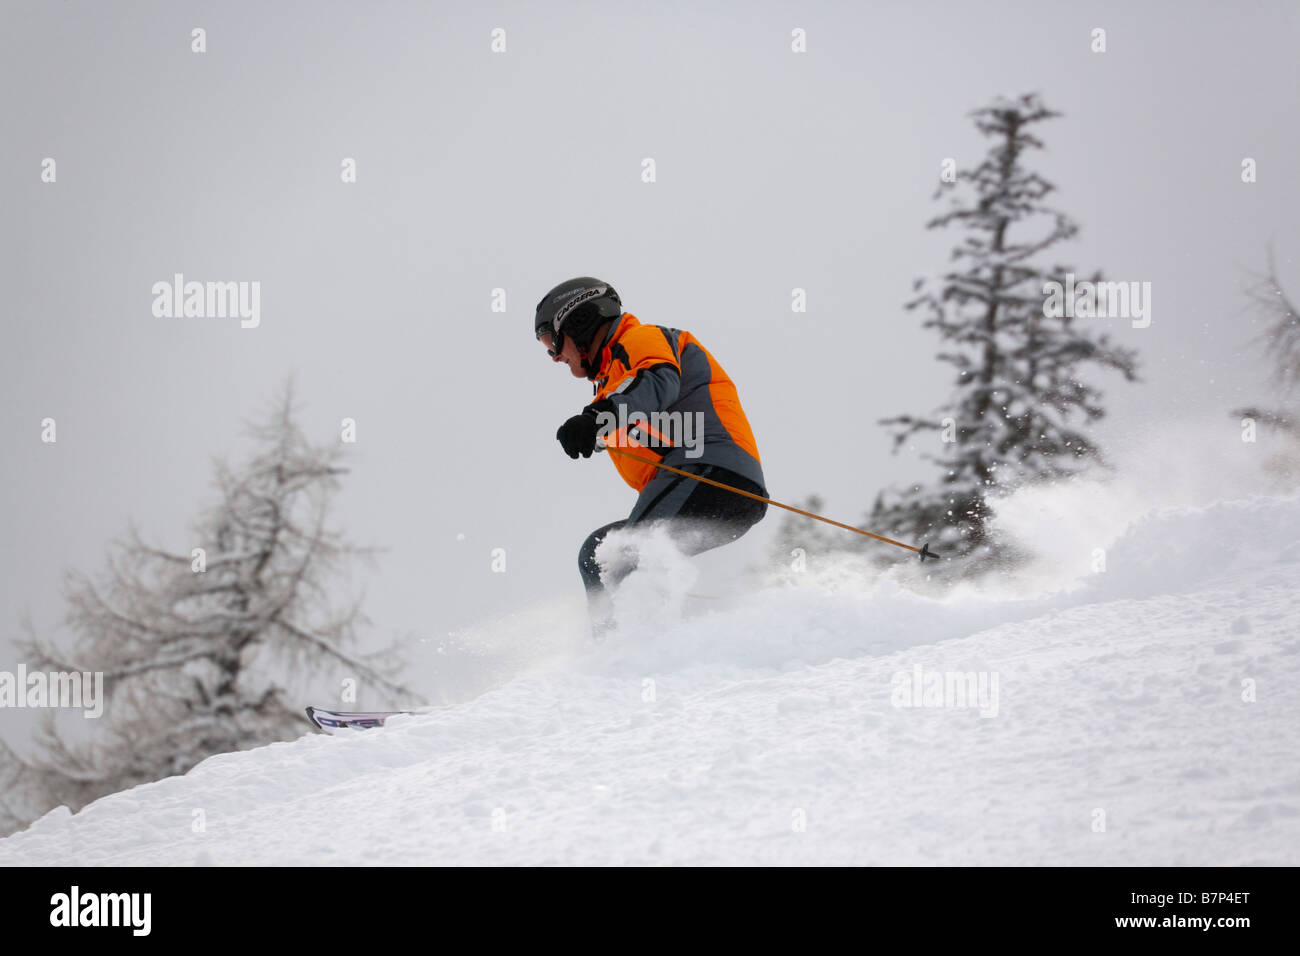 Austria Skier skiing fast downhill in powder snow on piste in Austrian Alps - Stock Image